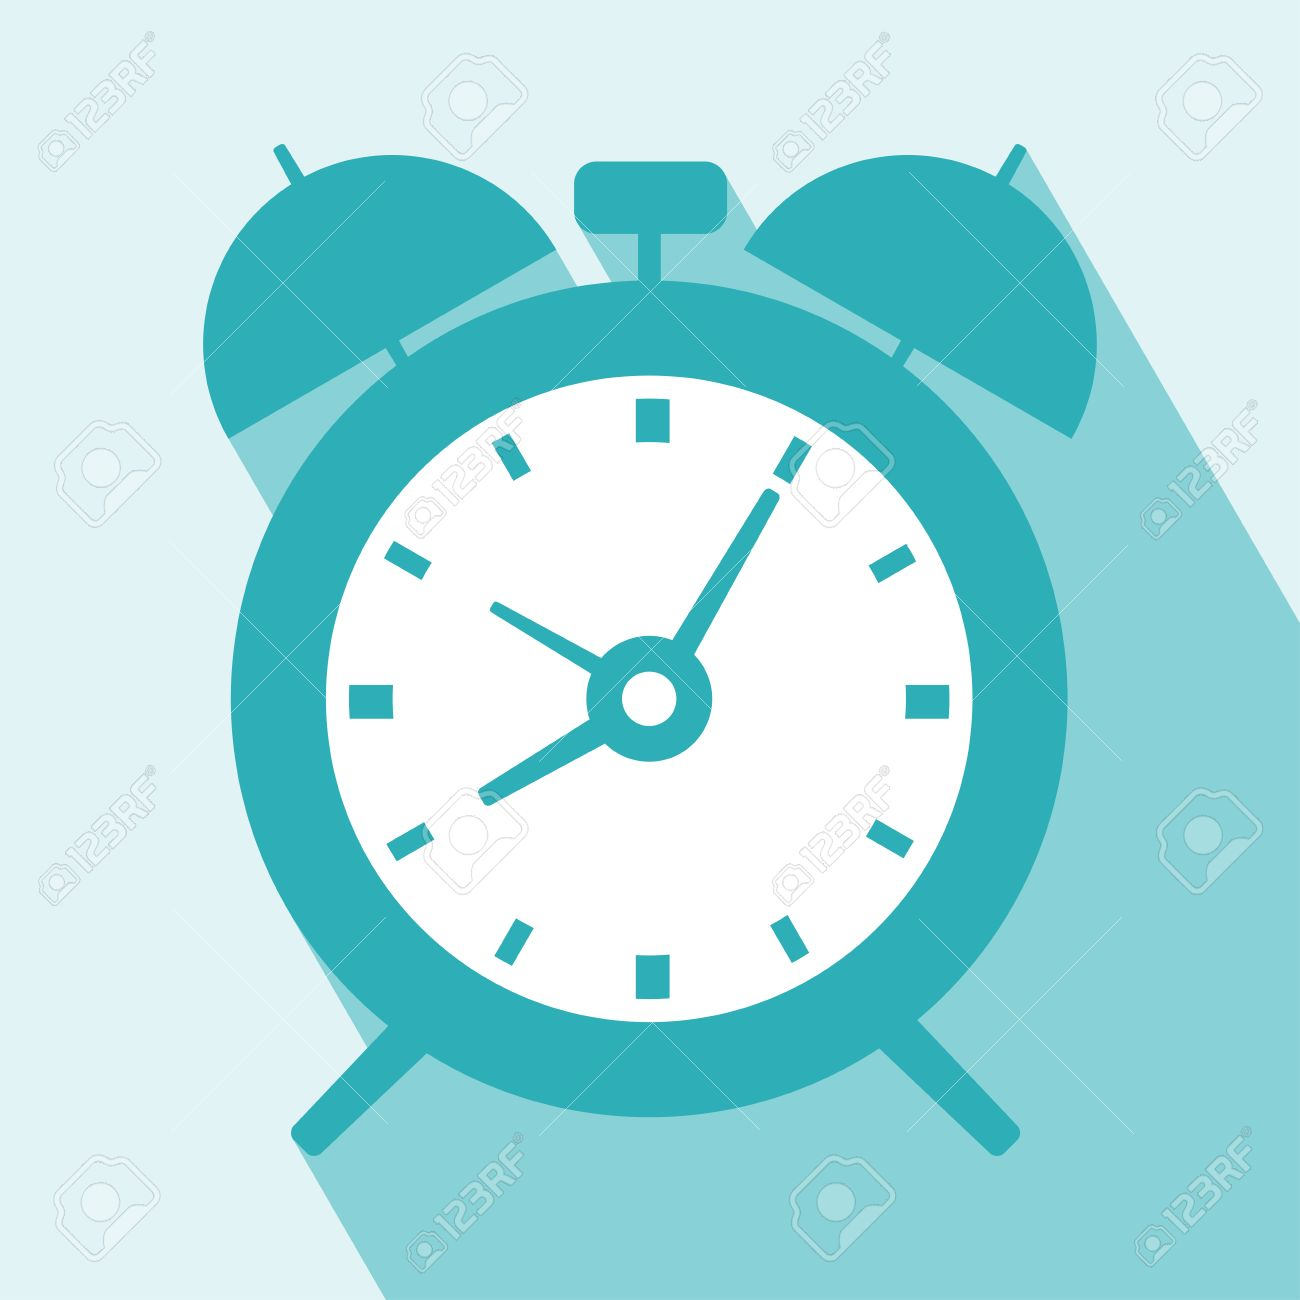 Alarm Clock Icon. Alarm Clock Icon vector isolated on light blue background. Alarm Clock Icon with Long Shadow. All in a single layer. Vector illustration. Elements for design. - 31580176